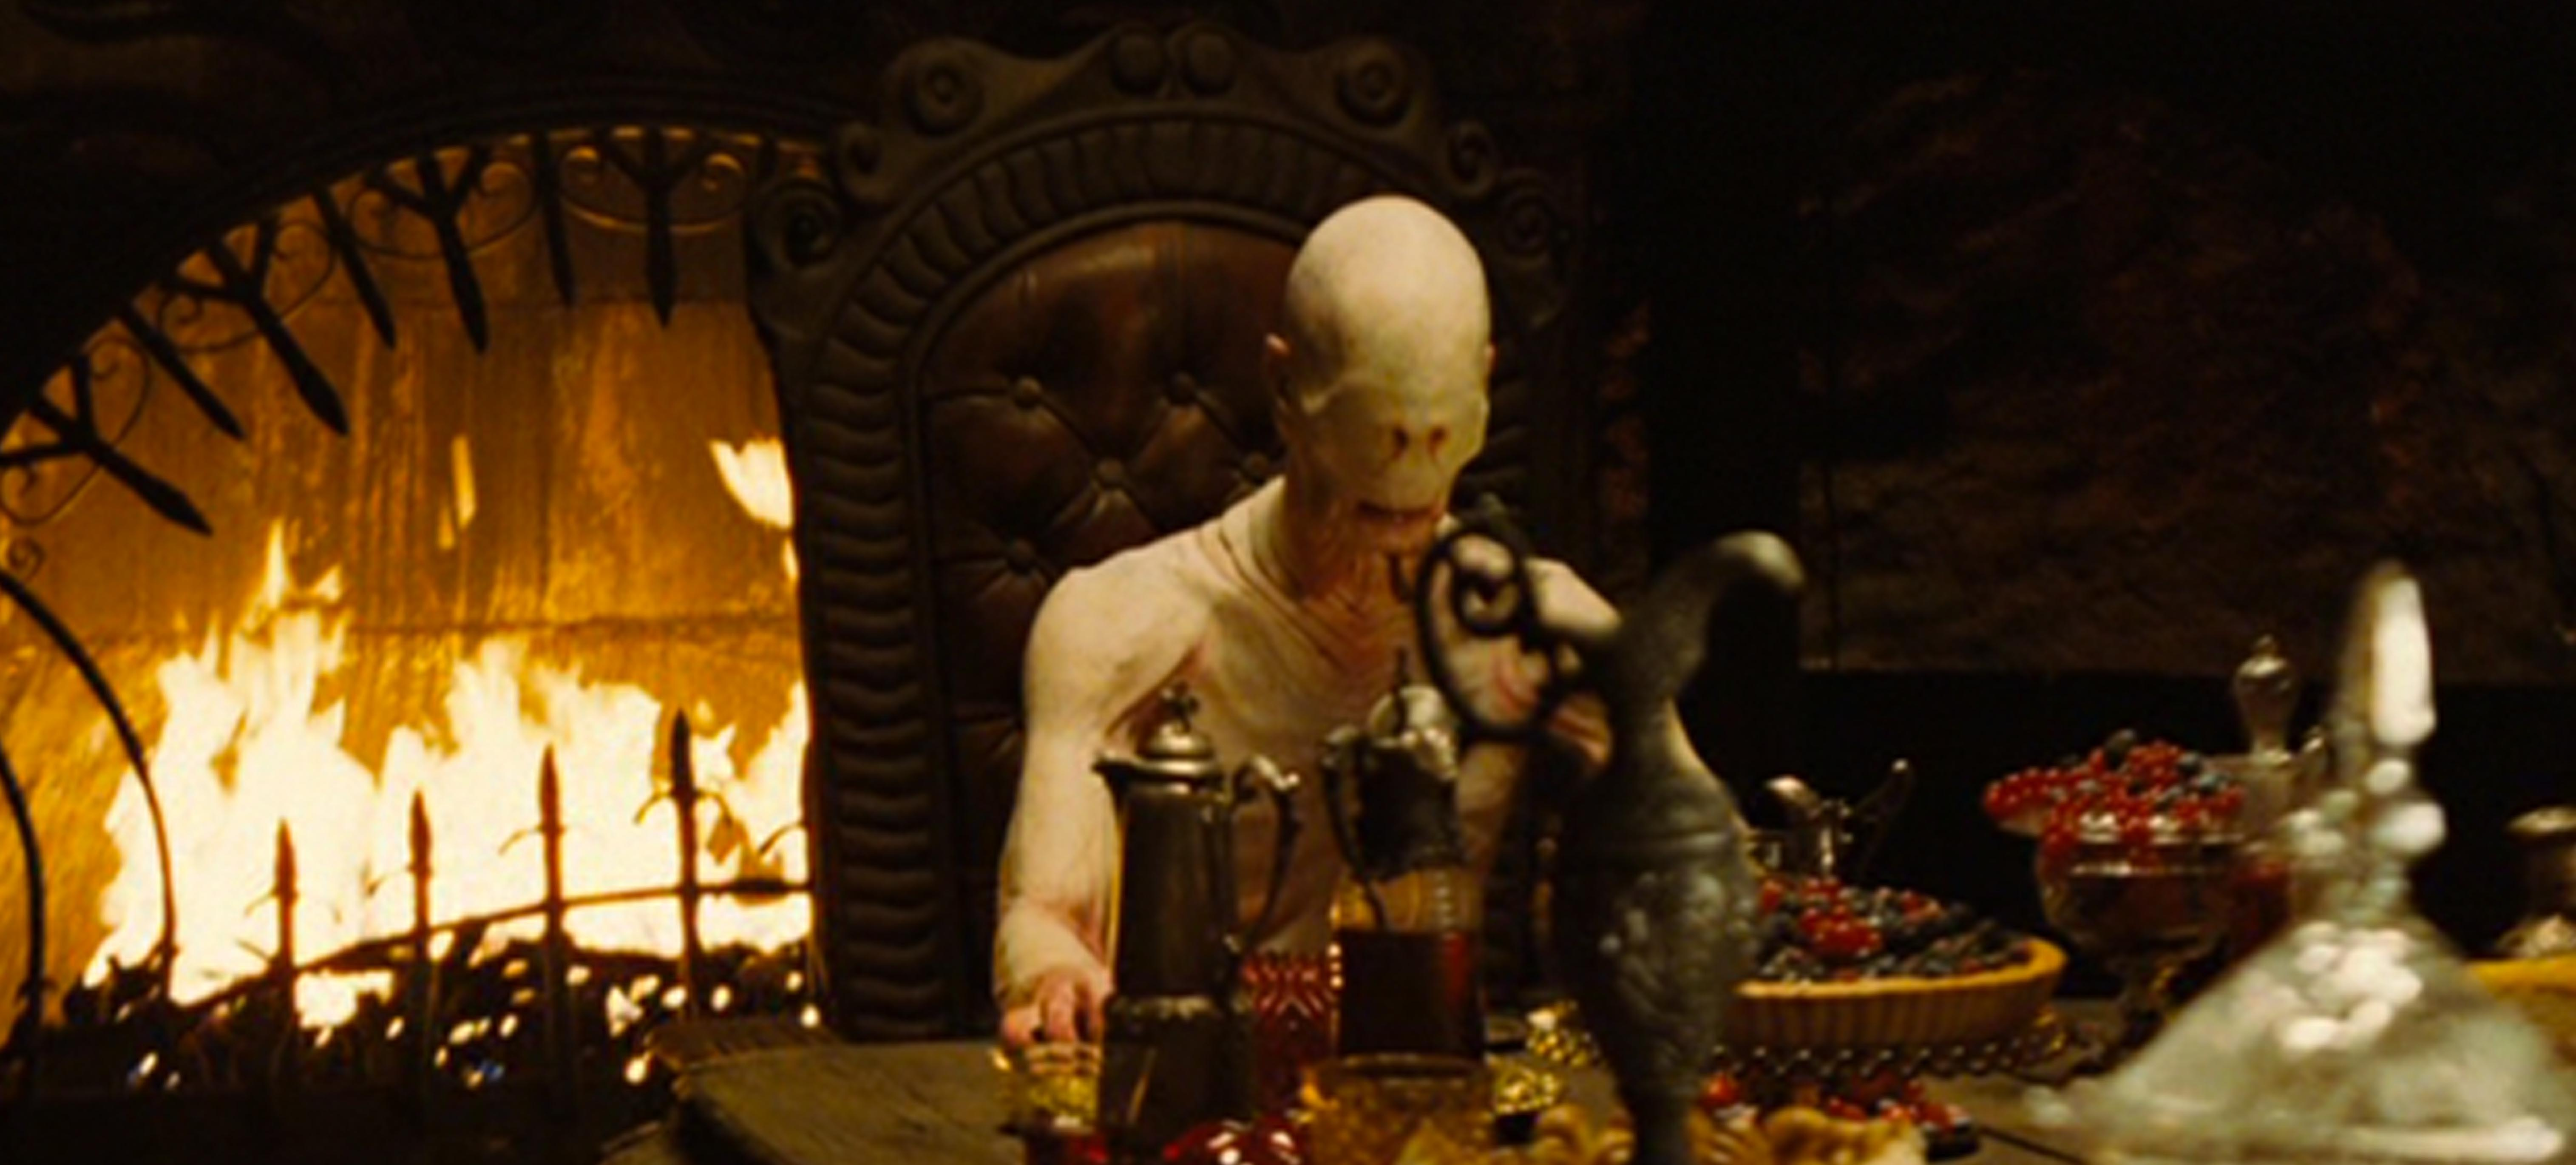 Oscar horrors setting the table for the pale man blog for Table 9 movie